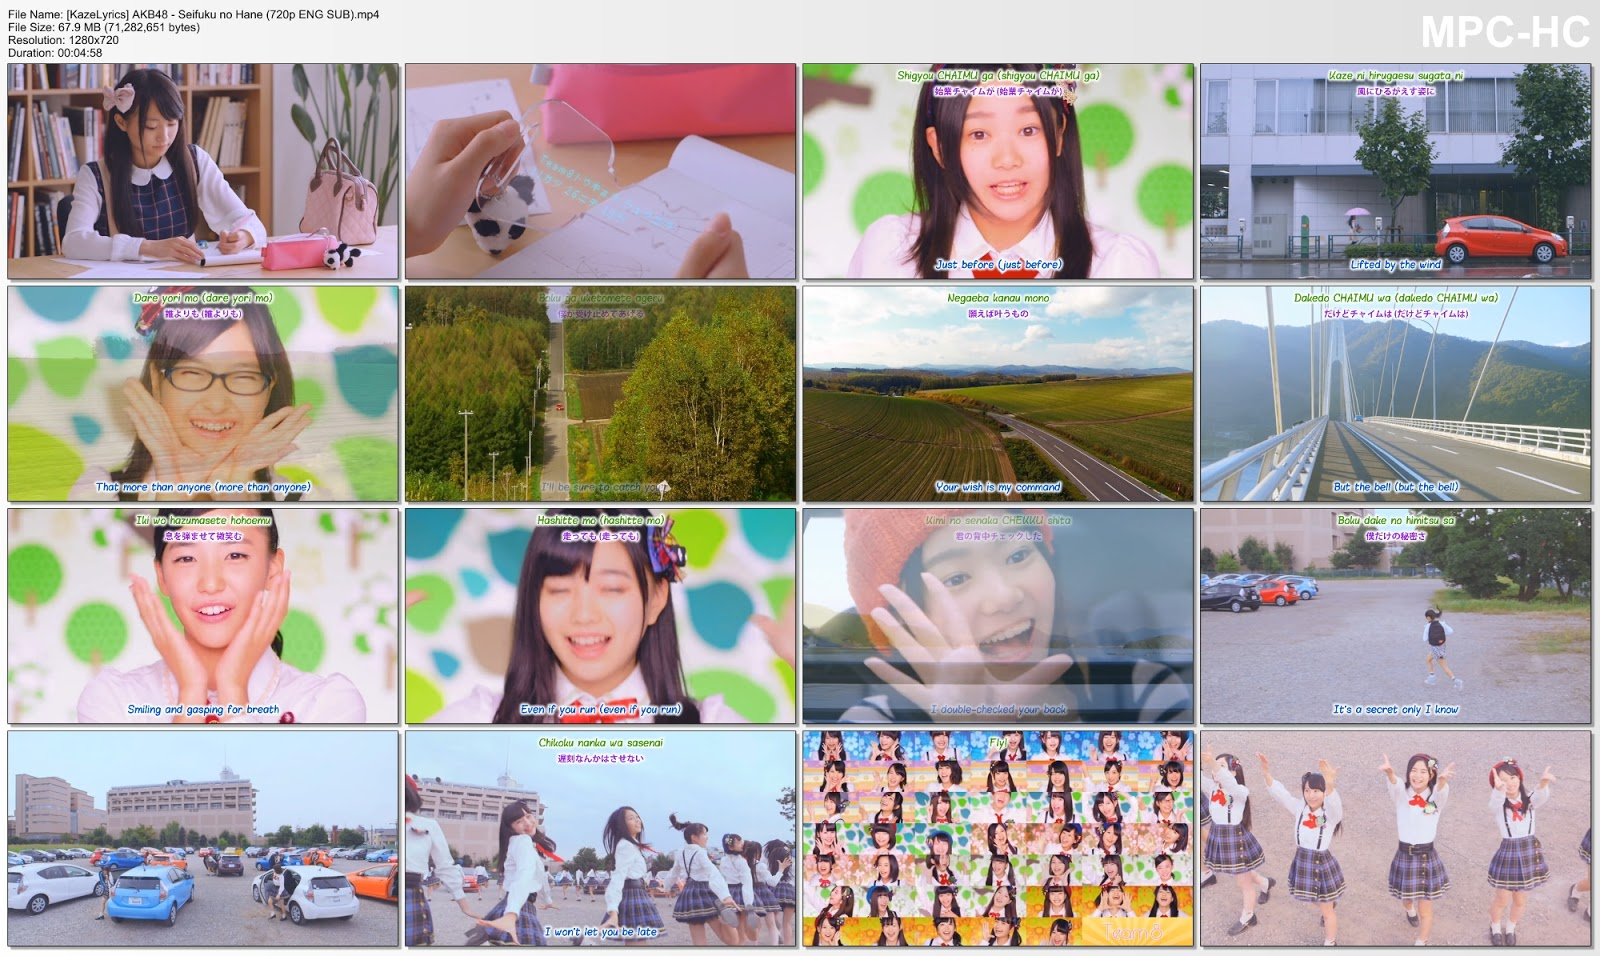 Pv sub akb48 seifuku no hane sub indo eng sub kaze lyrics akb48 seifuku no hane subtitle indonesia english subtitle thecheapjerseys Image collections